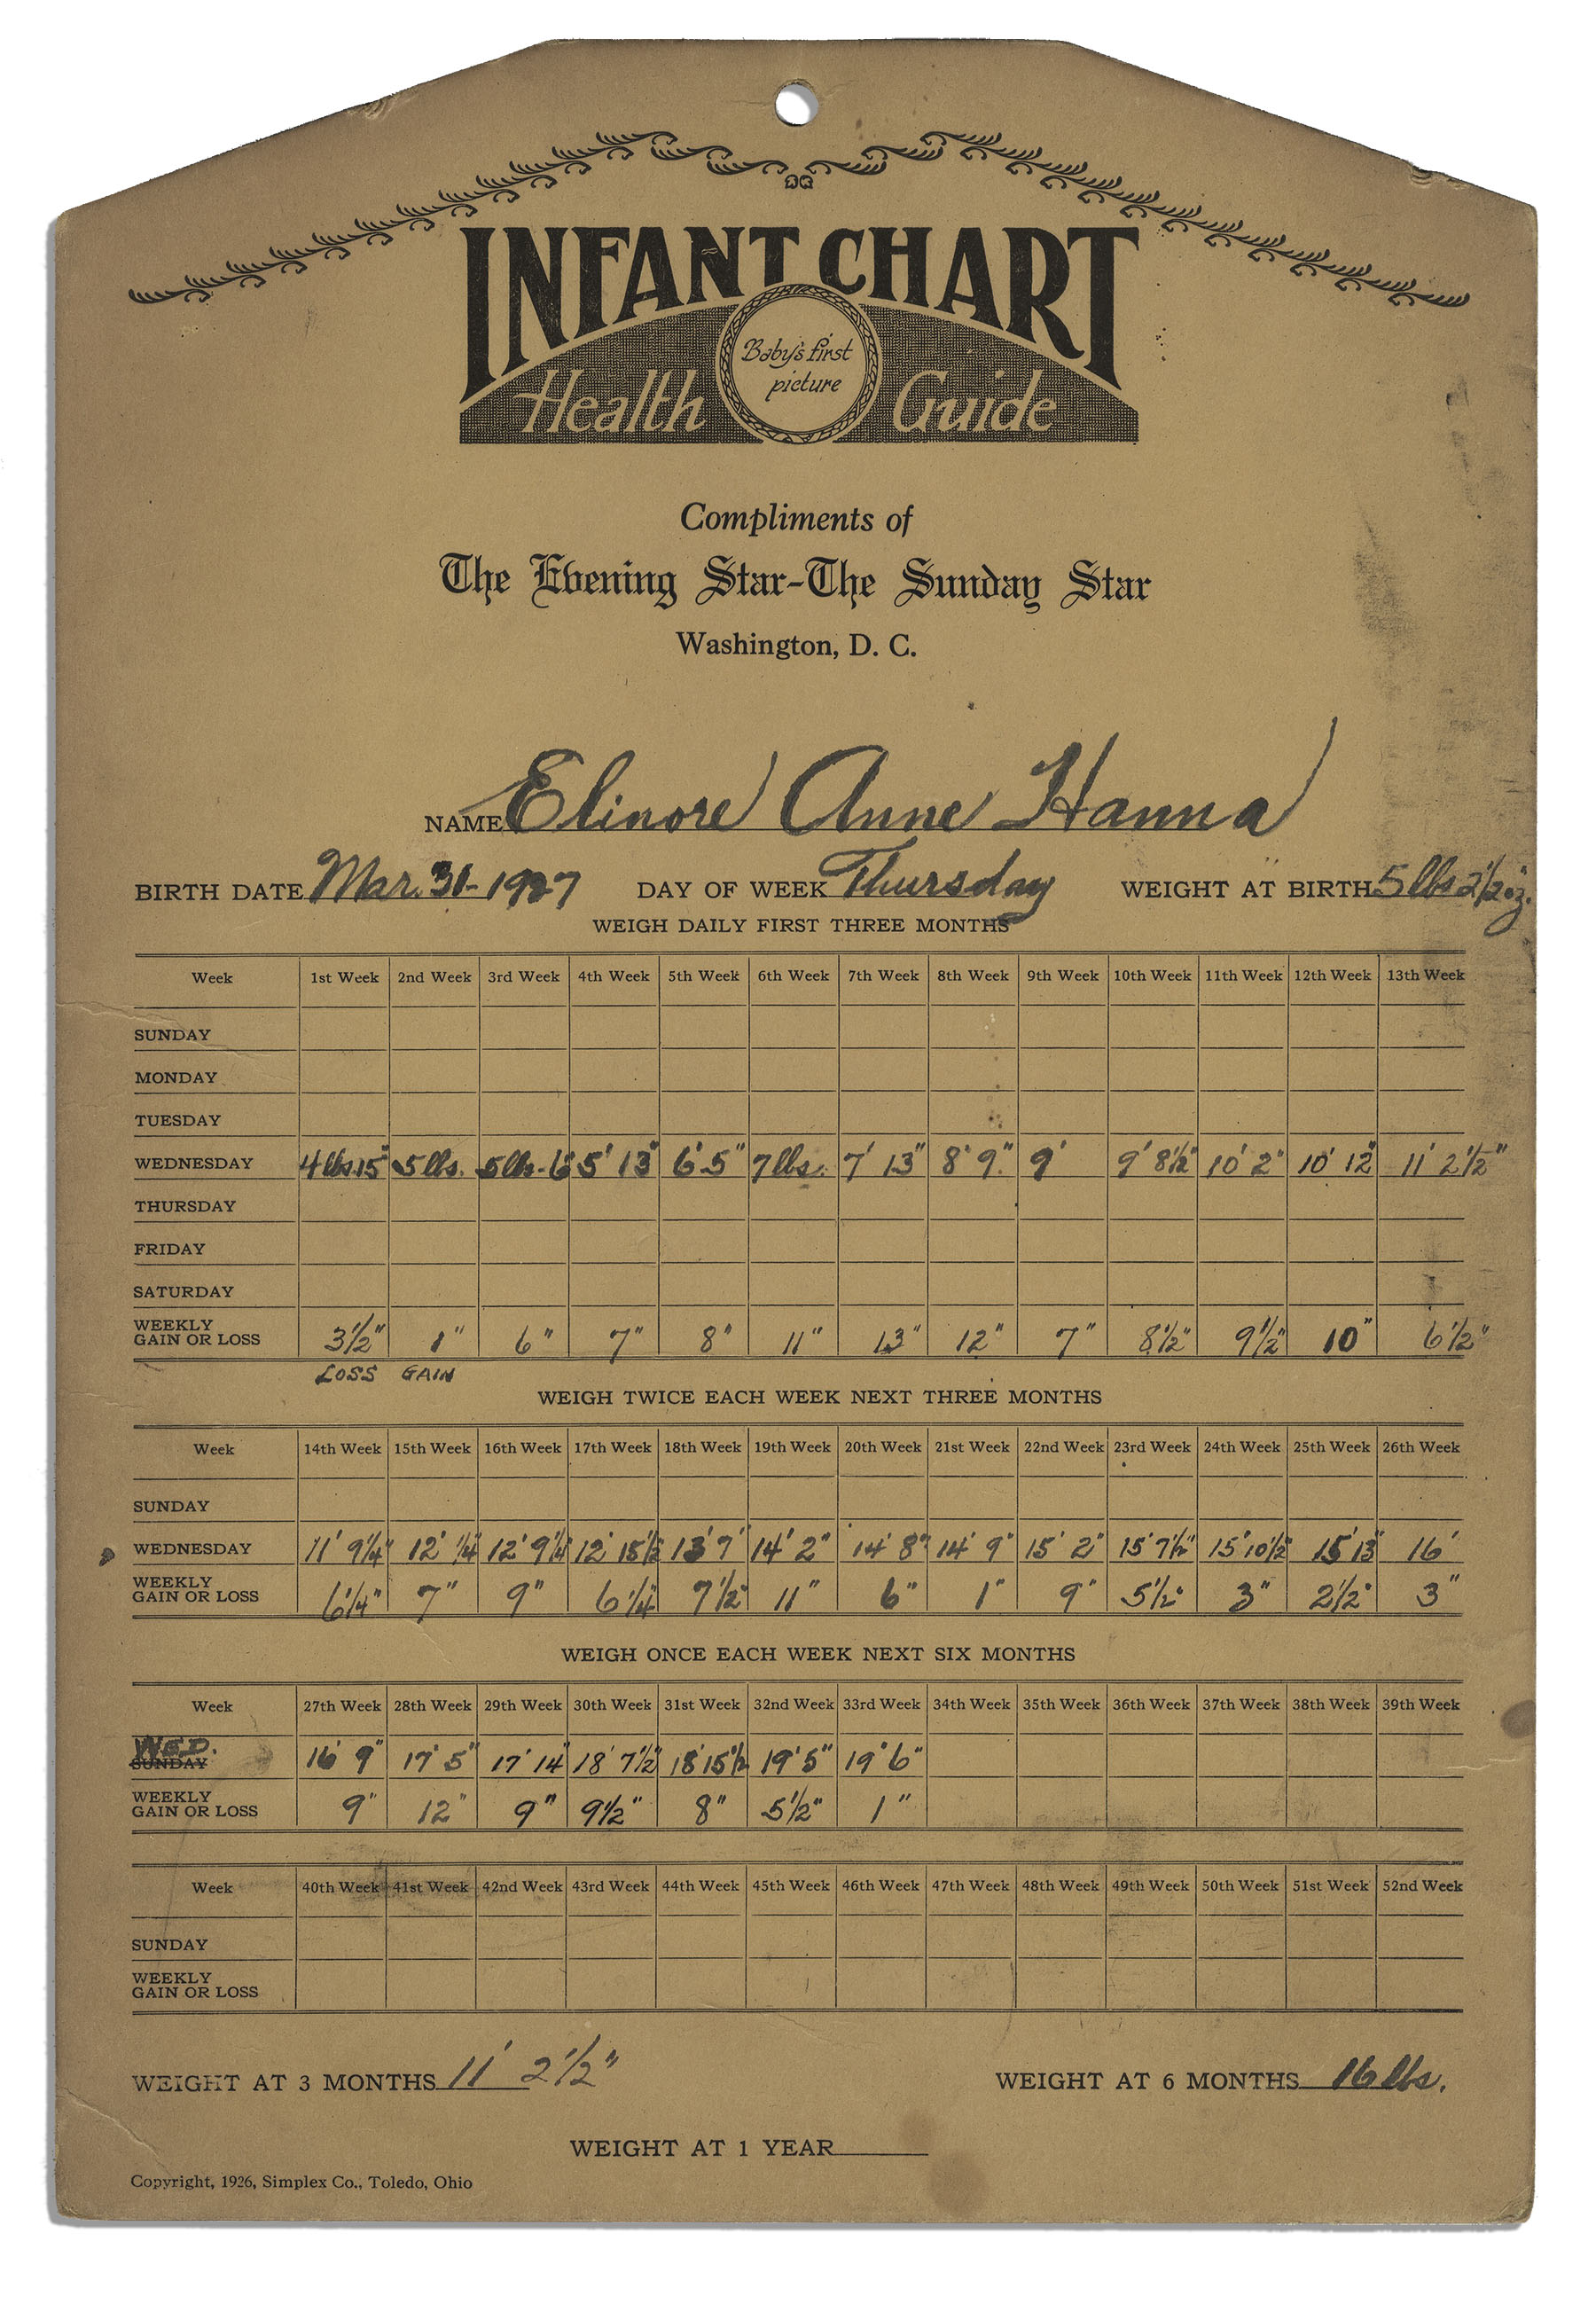 President of the united states of america signs birth certificate infant chart health guide front side xflitez Images